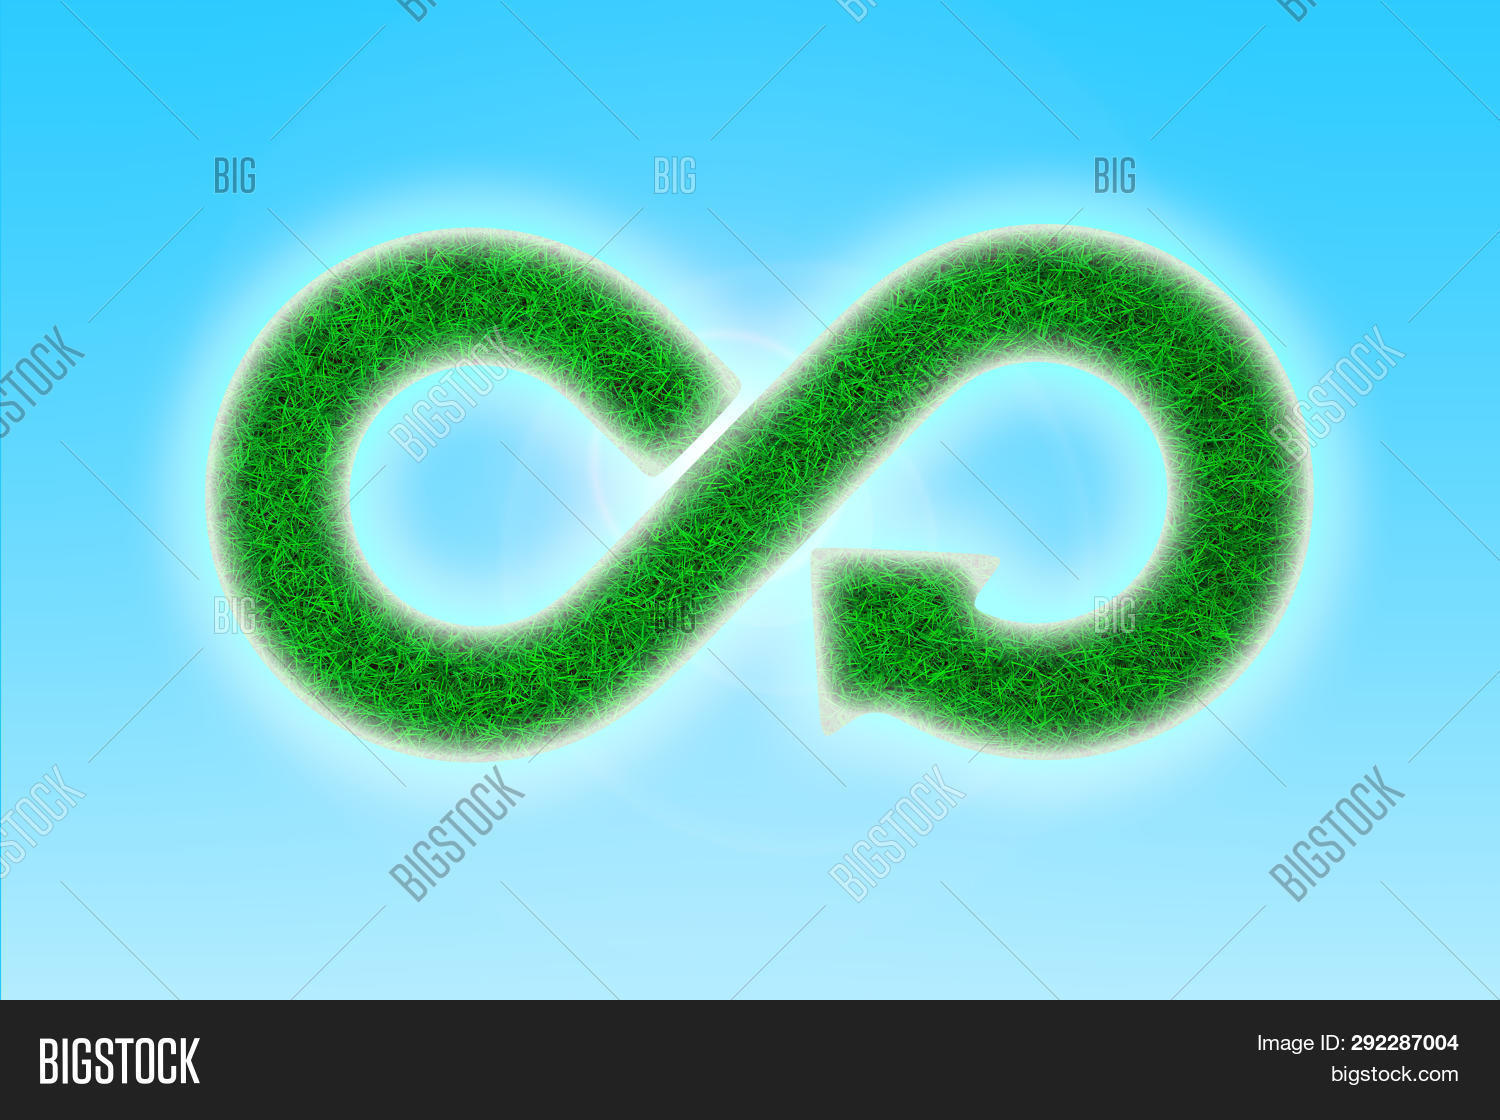 Green Eco Friendly Image Photo Free Trial Bigstock